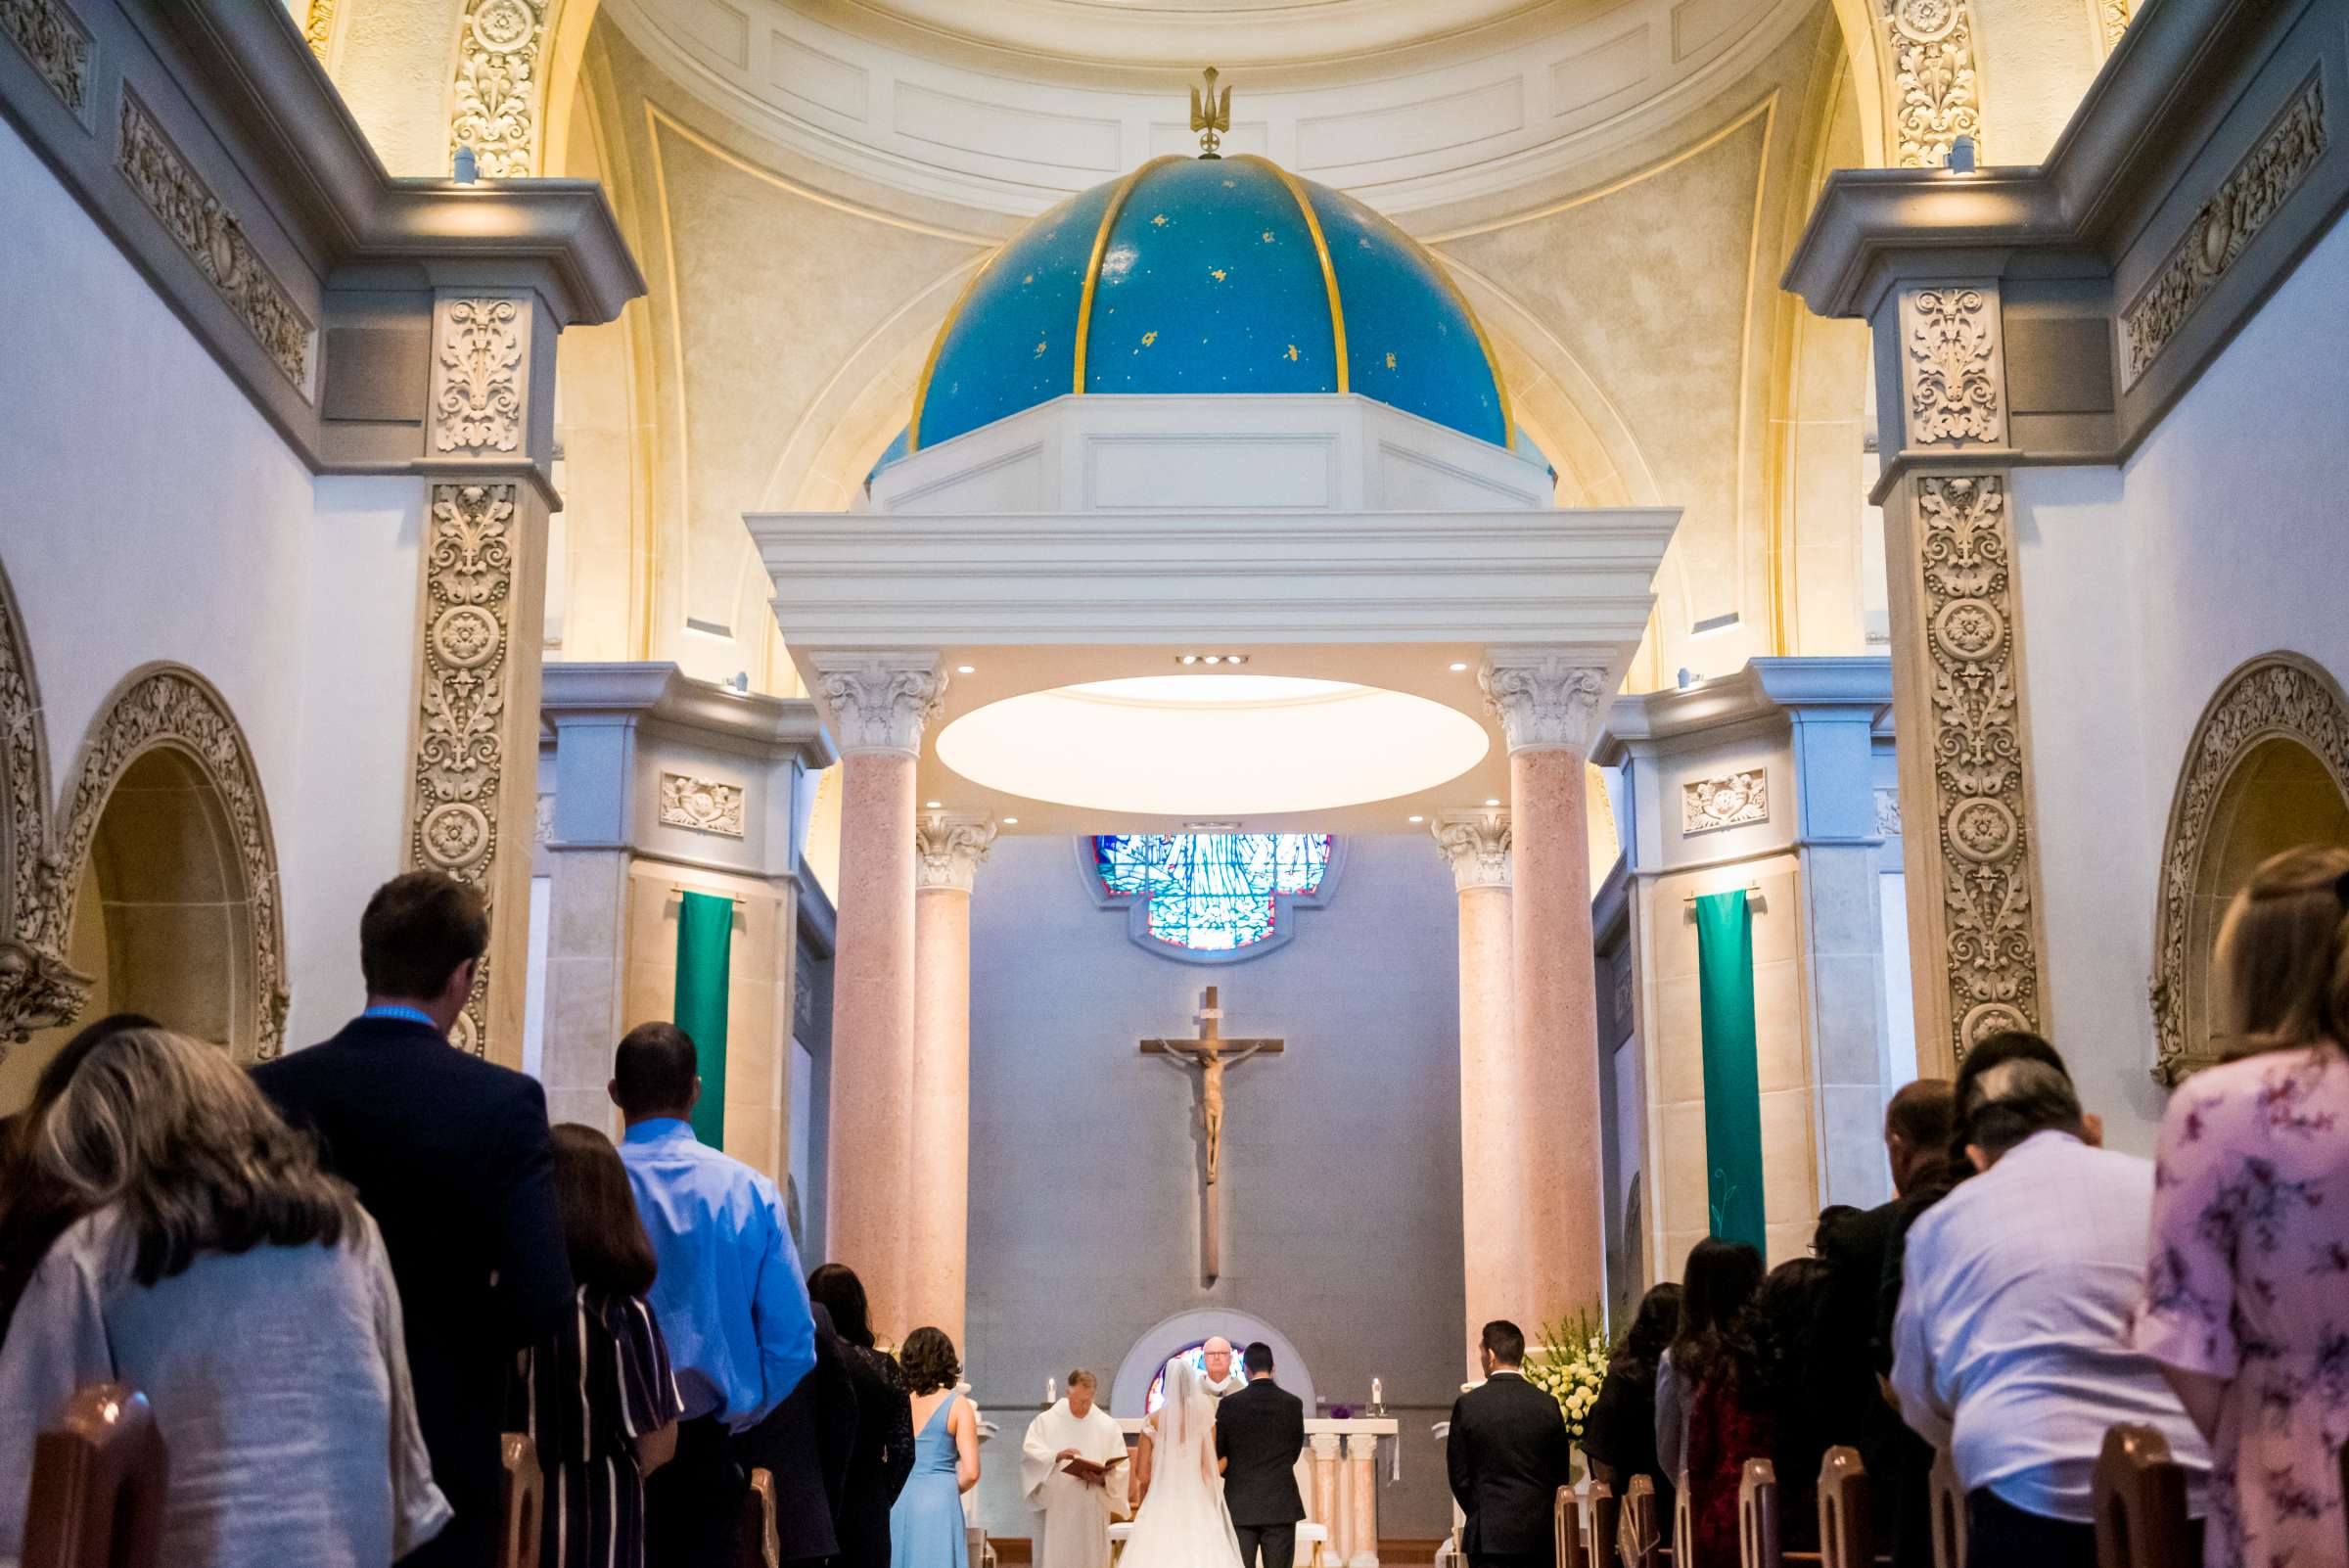 The Immaculata Wedding, Arianna and Jonah Wedding Photo #110 by True Photography